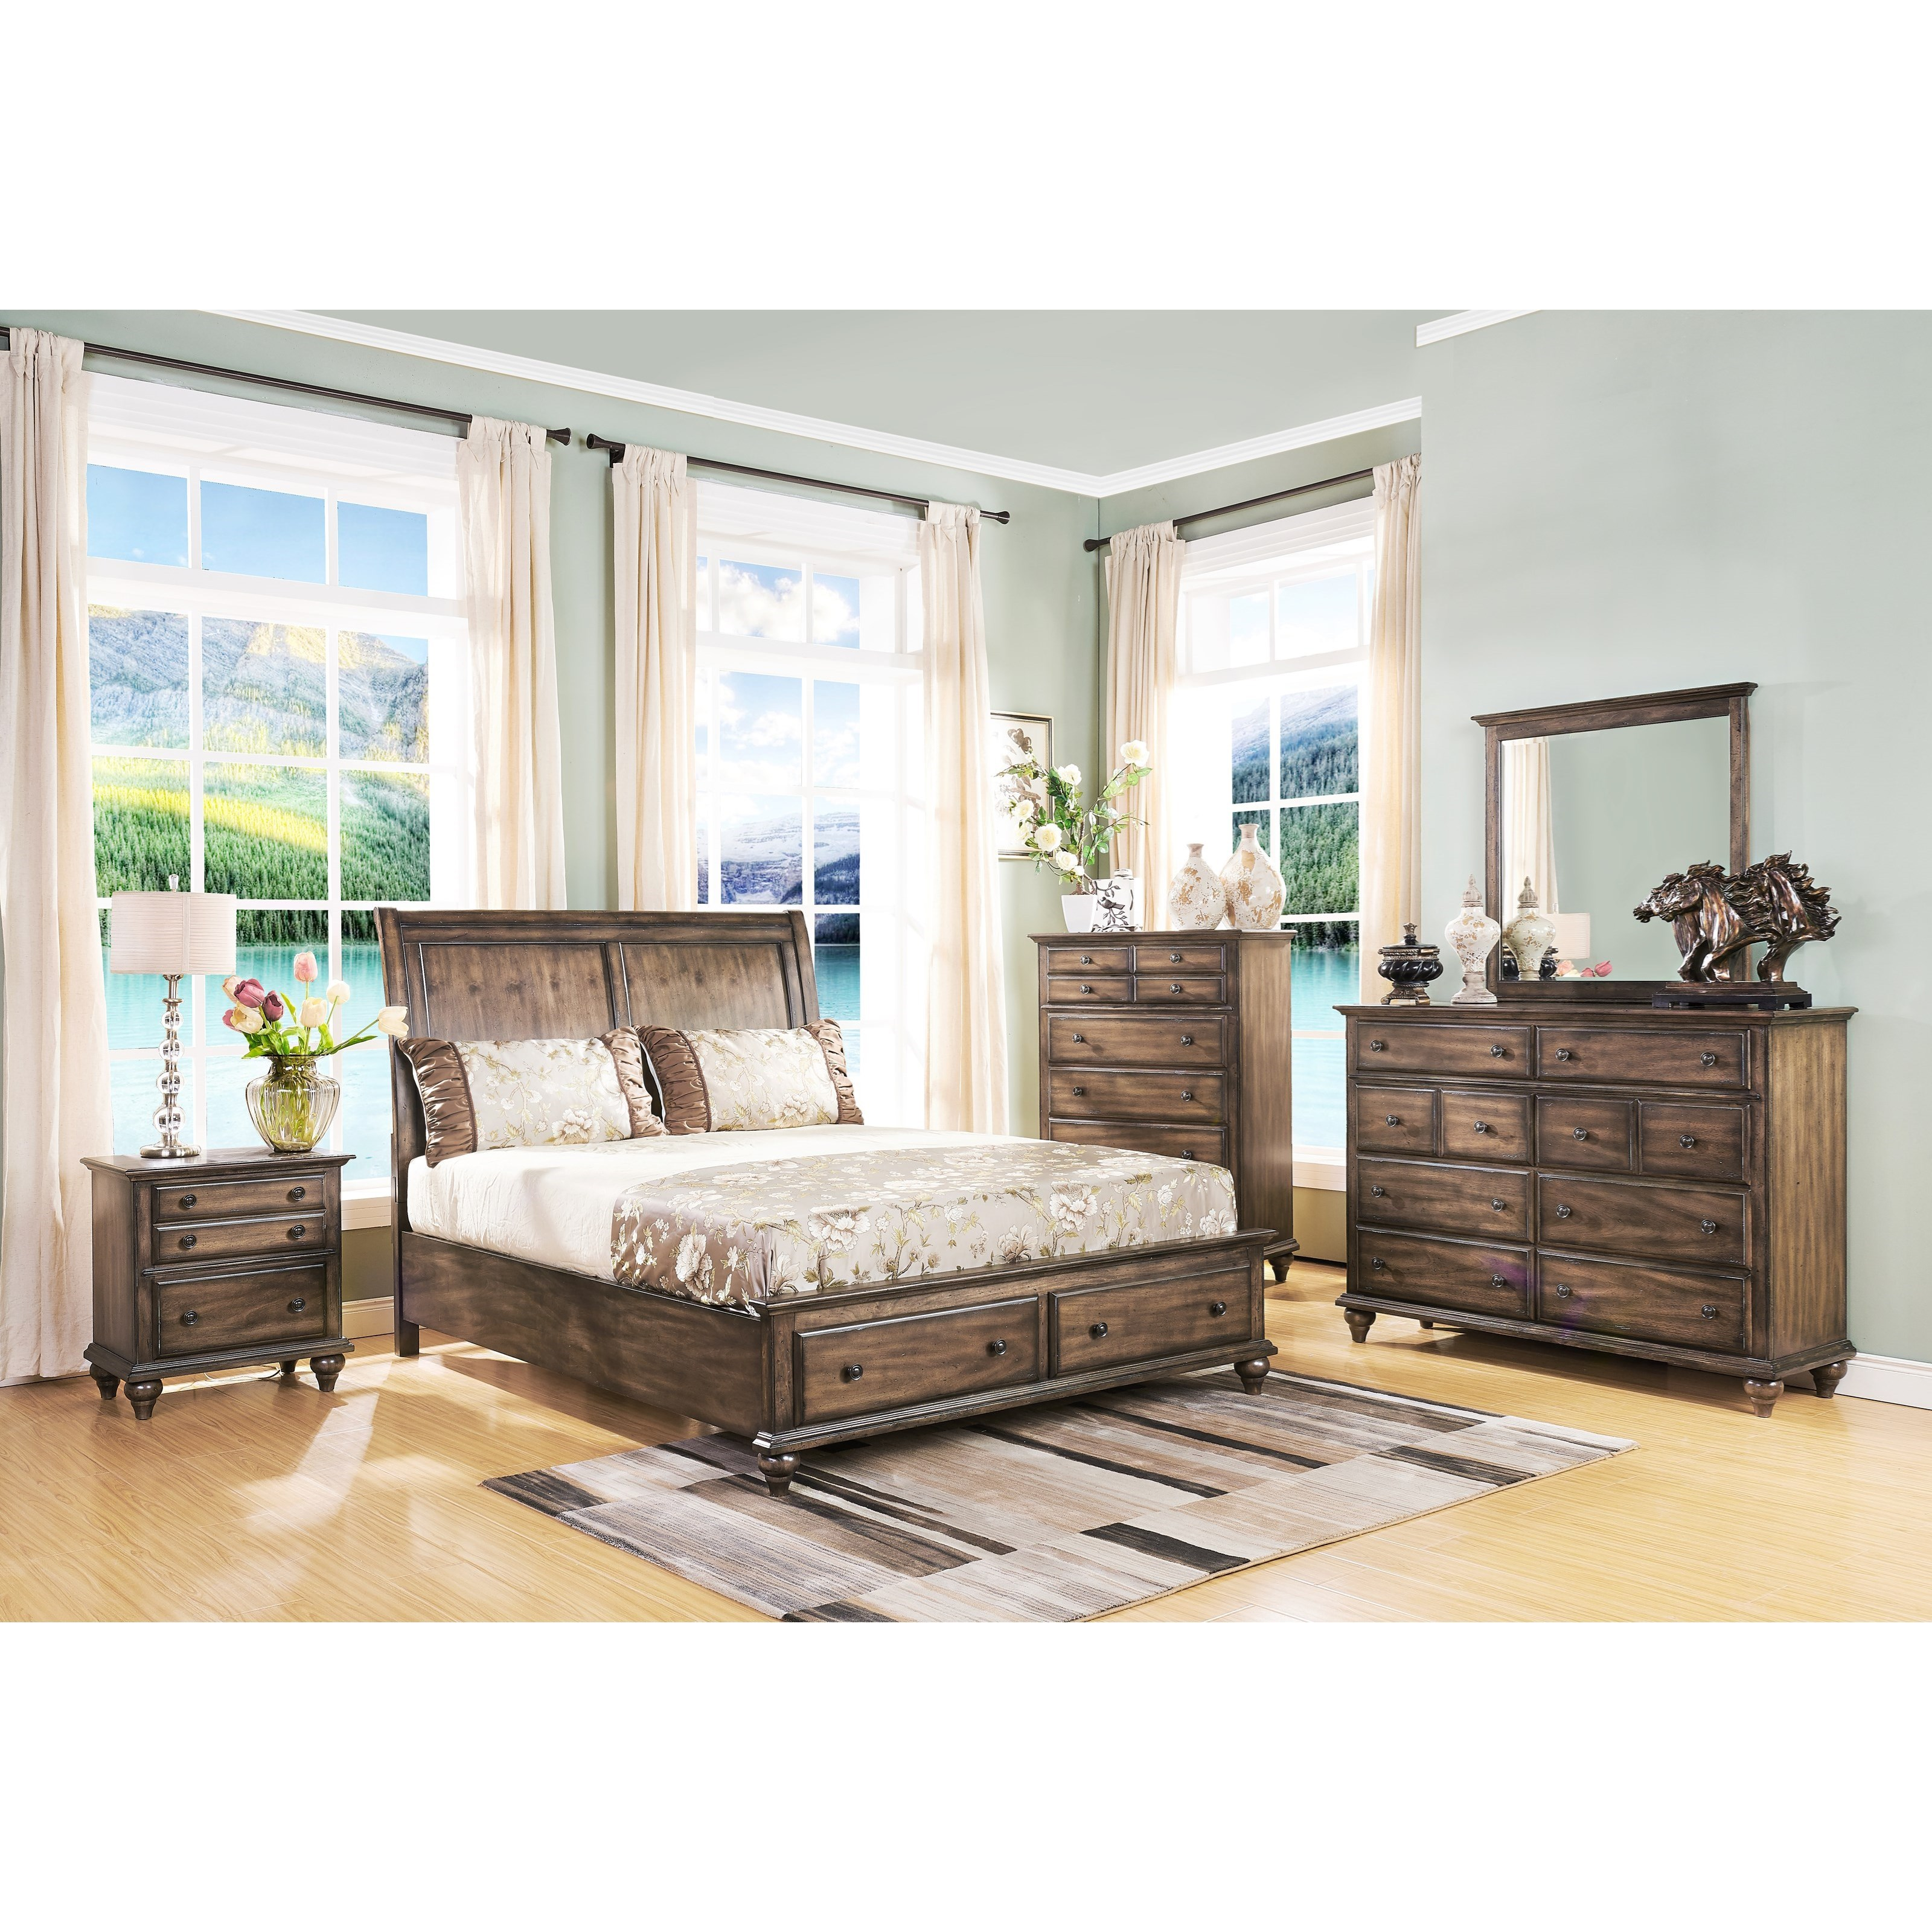 New Classic Fallbrook Dresser Mirror With Beveled Glass And Wood Frame Miskelly Furniture